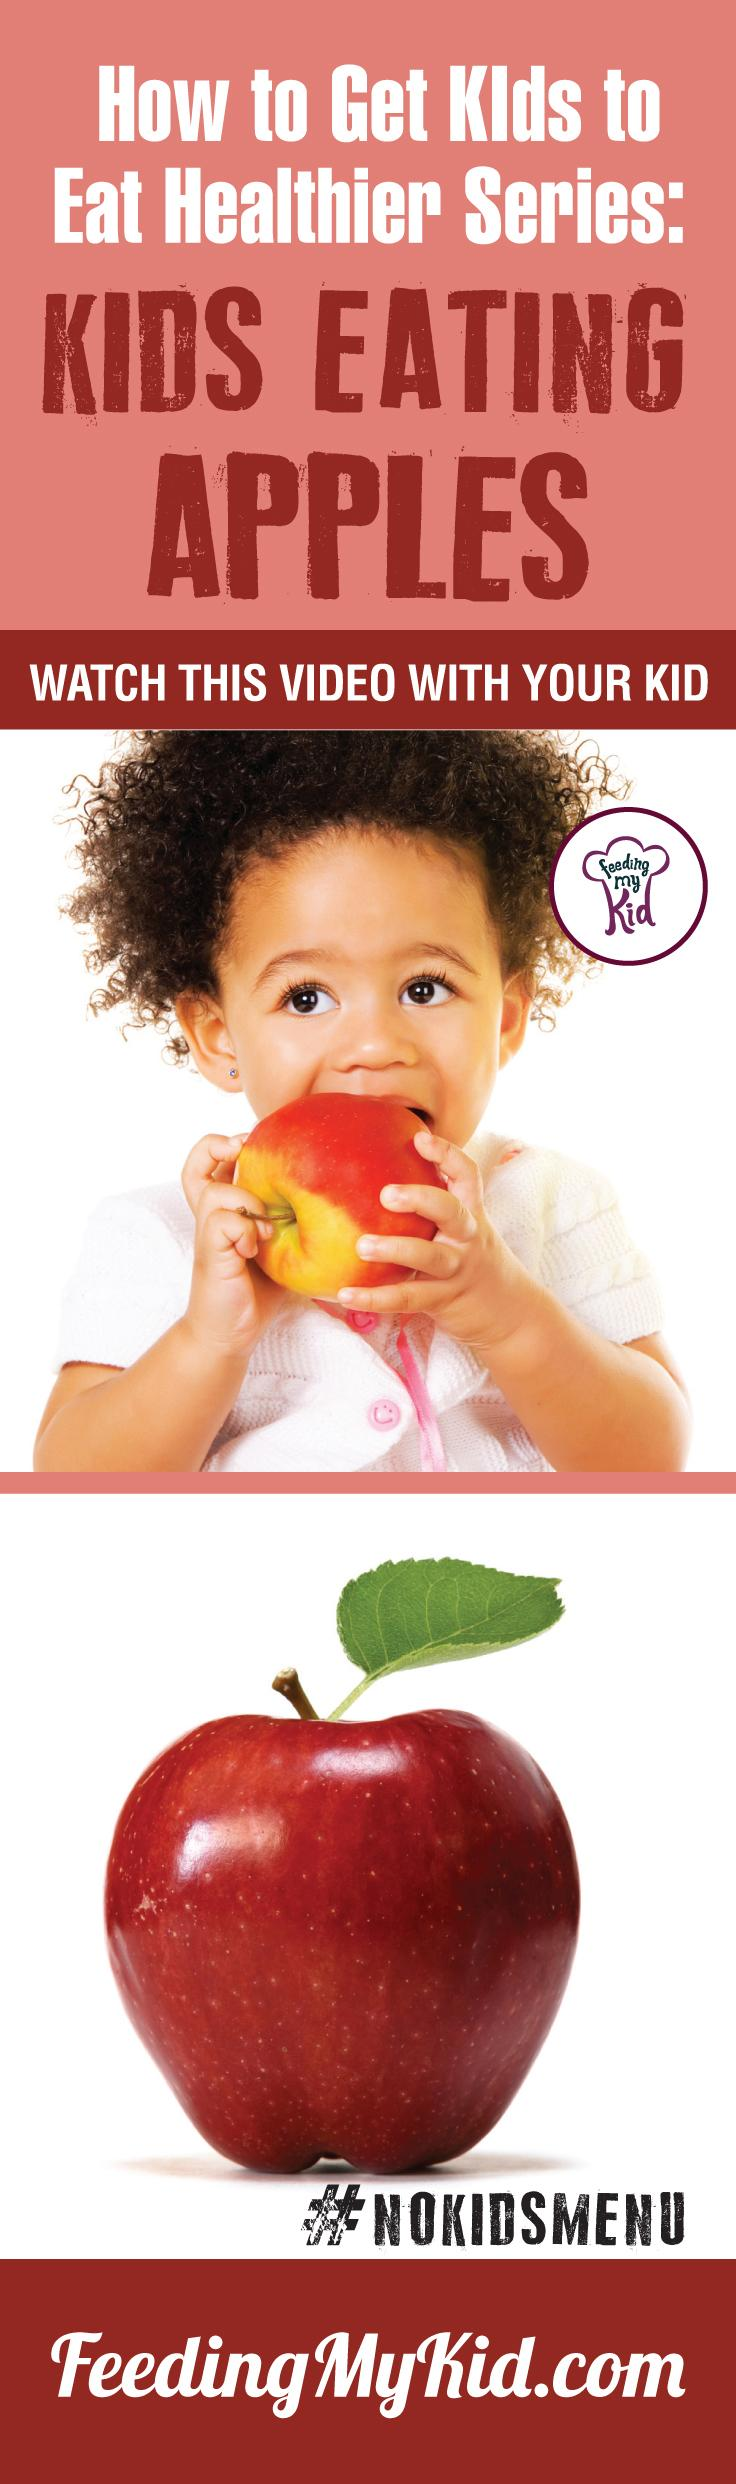 Want to get your kids eating apples? Teach your kids how to eat more vegetables and fruits. Watch these videos with your kids of children eating veggies and fruits and get your kids to eat veggies and fruits. Find out how it works here. Fruits for kids! Feeding My Kid is a filled with all the information you need about how to raise your kids, from healthy tips to nutritious recipes. #pickyeating #getkidstoeat #apples #FruitsForKids #NoKidsMenu